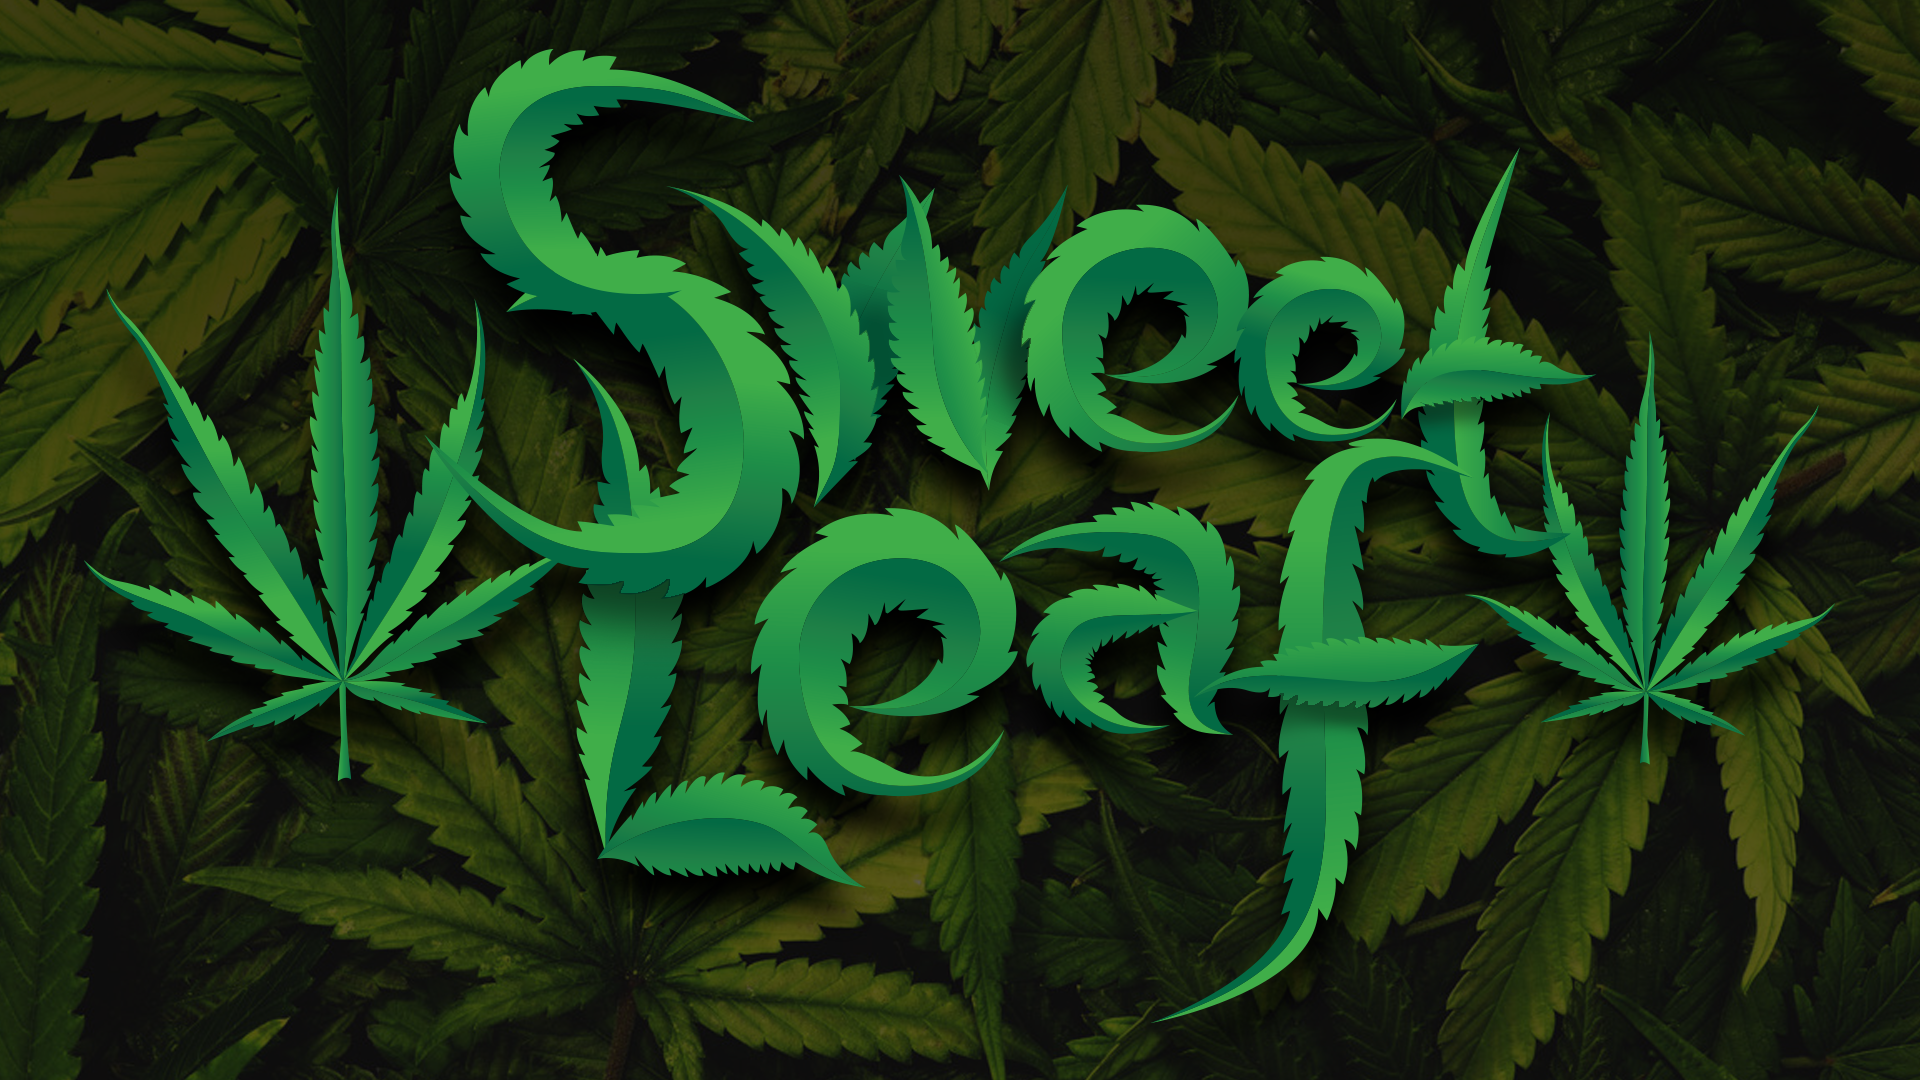 Download Sweet Leaf cool free fonts